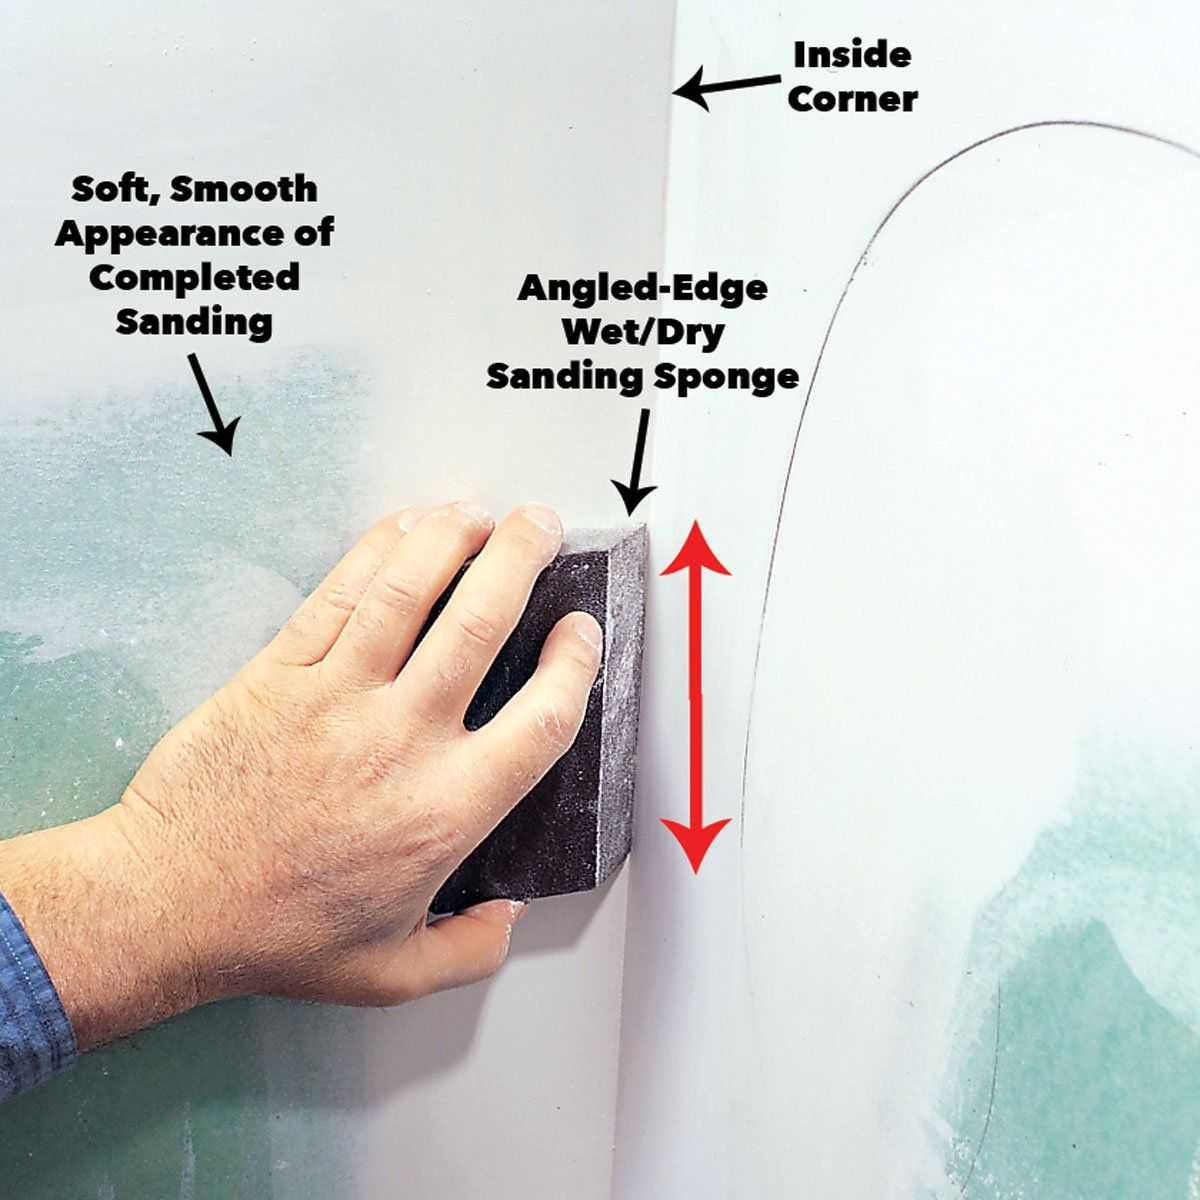 Drywall Sanding Tips And Techniques Drywall Installation Drywall Finishing How To Patch Drywall